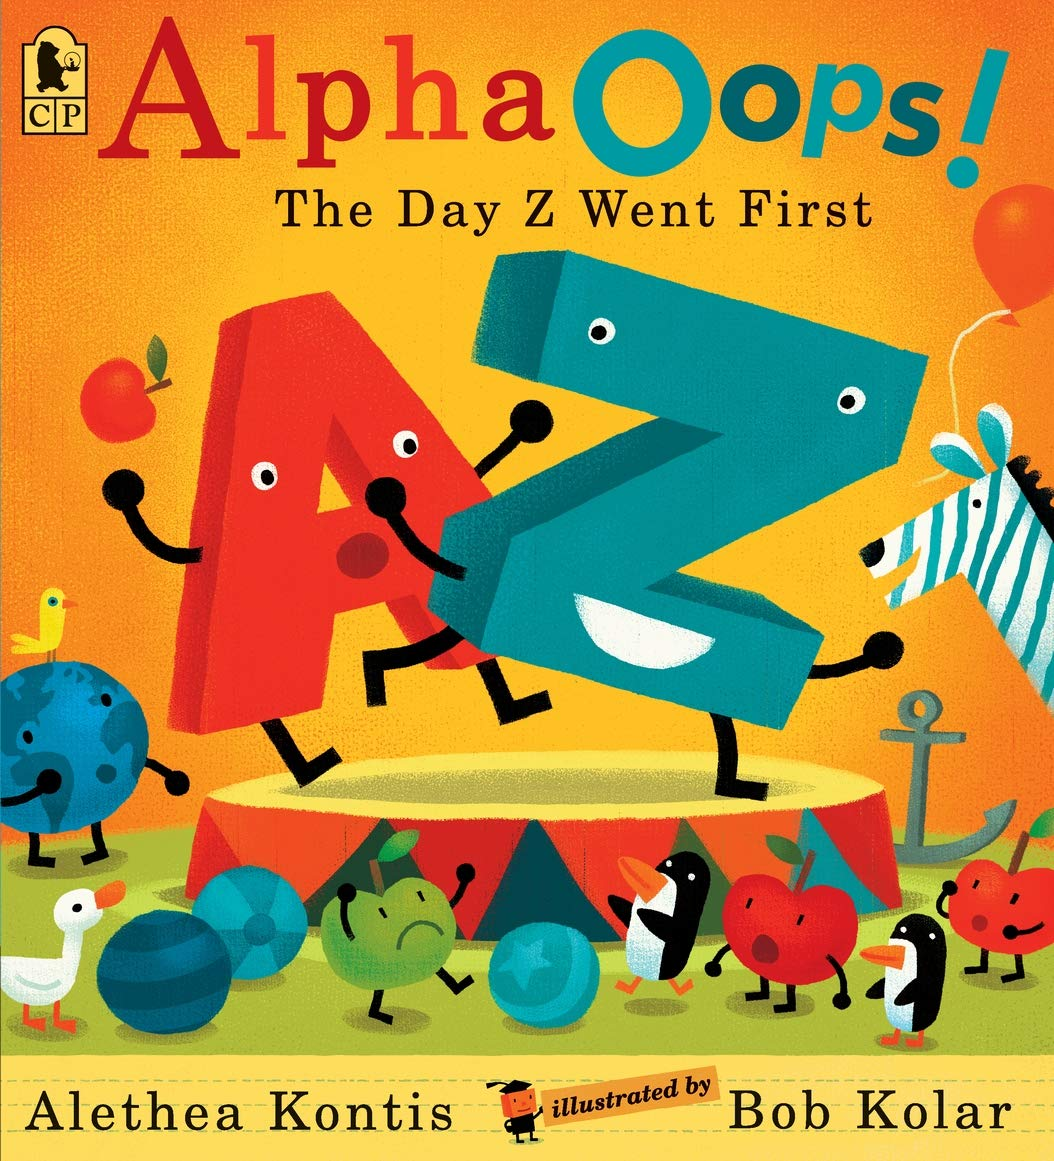 Amazon.com: AlphaOops!: The Day Z Went First (9780763660840): Kontis,  Alethea, Kolar, Bob: Books